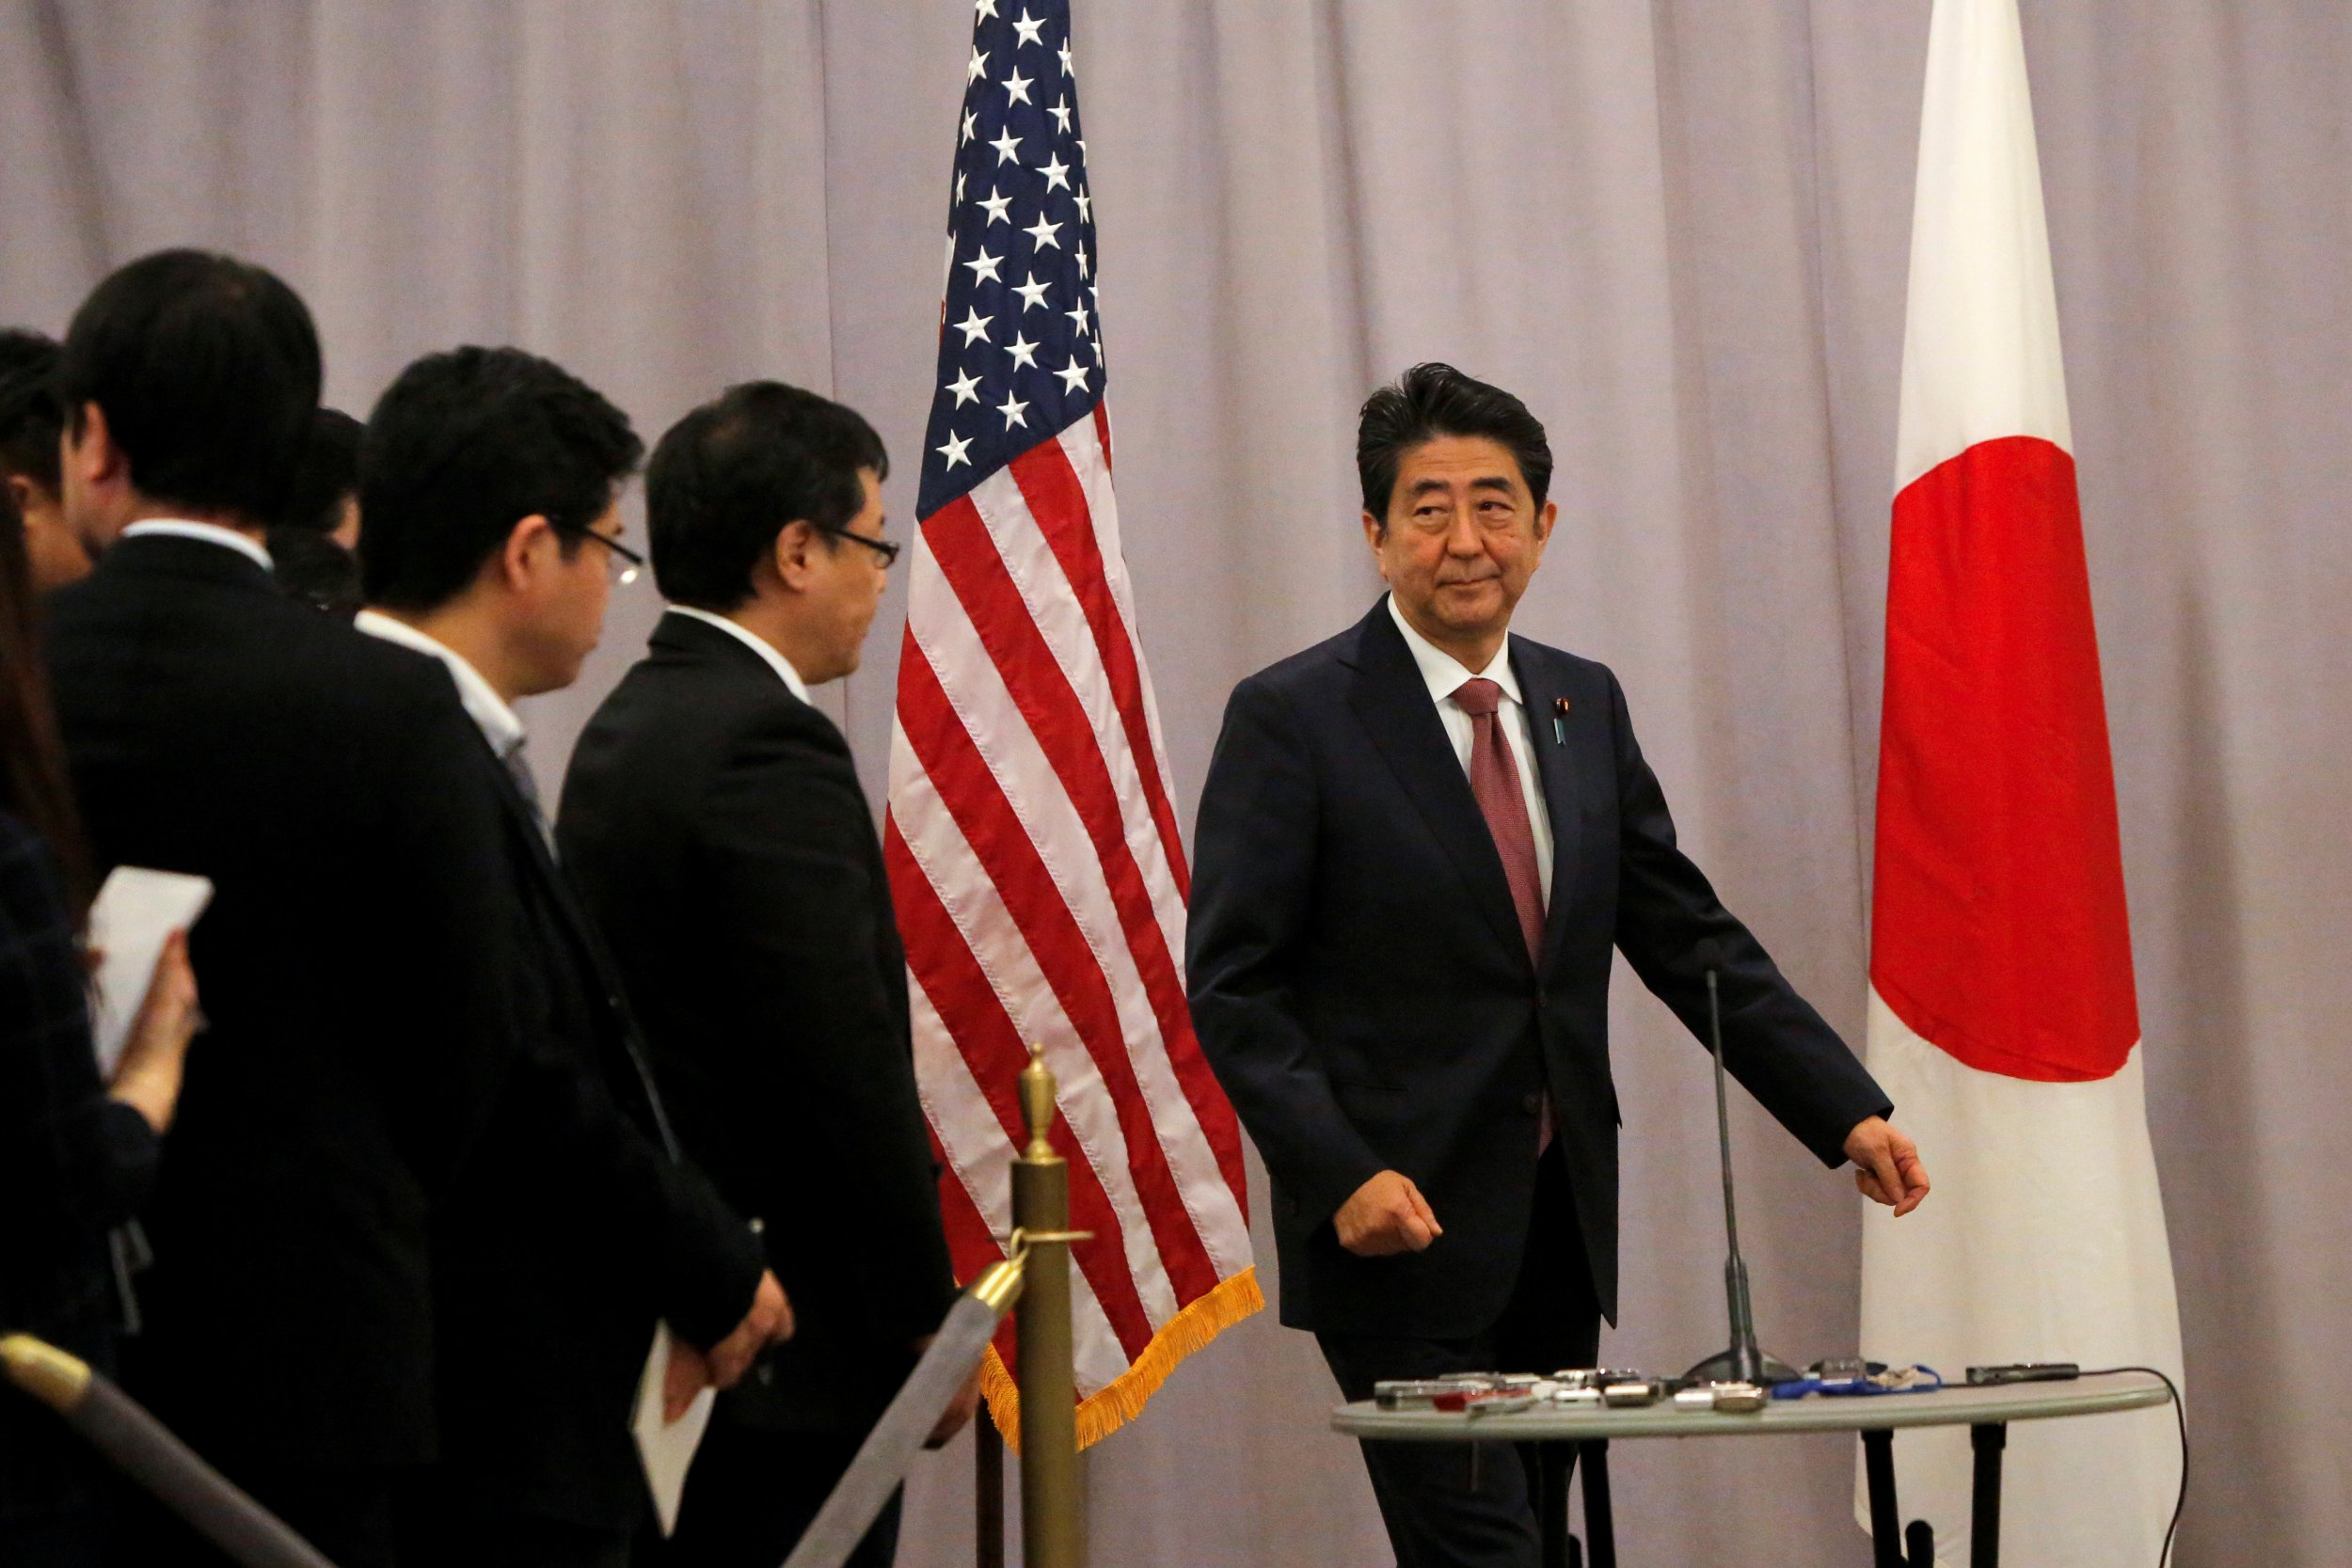 Abe speaks to reporters after meeting Trump